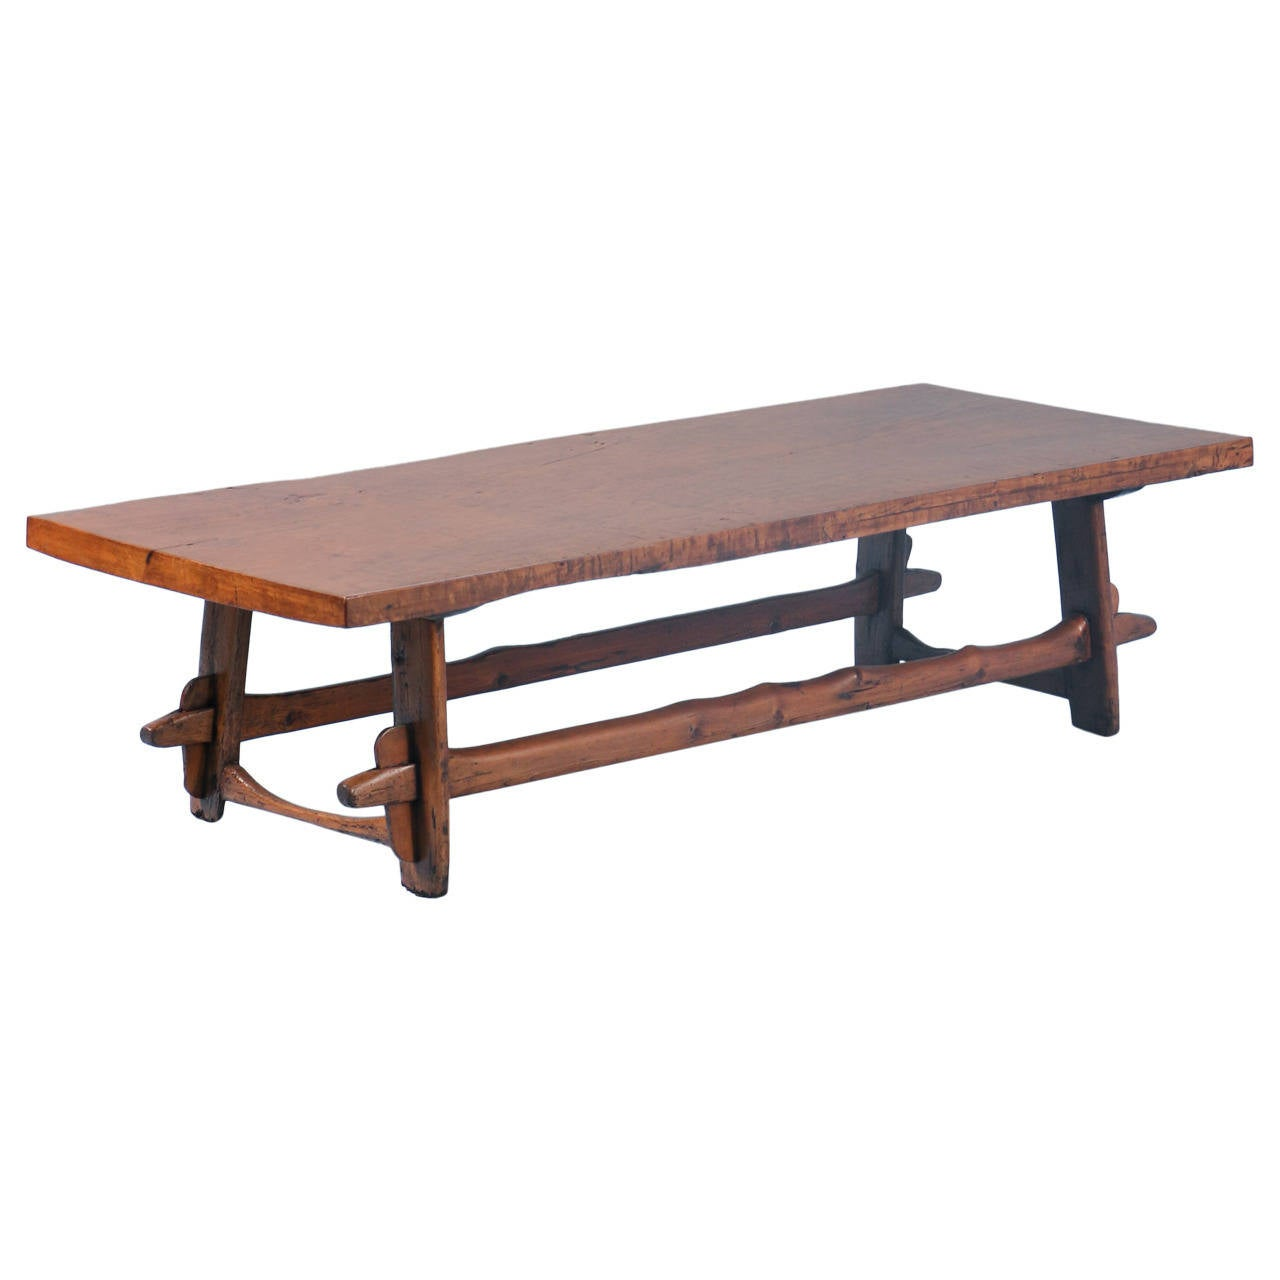 Antique Long Coffee Table Stunning Wood Circa 1820 1840 At 1stdibs